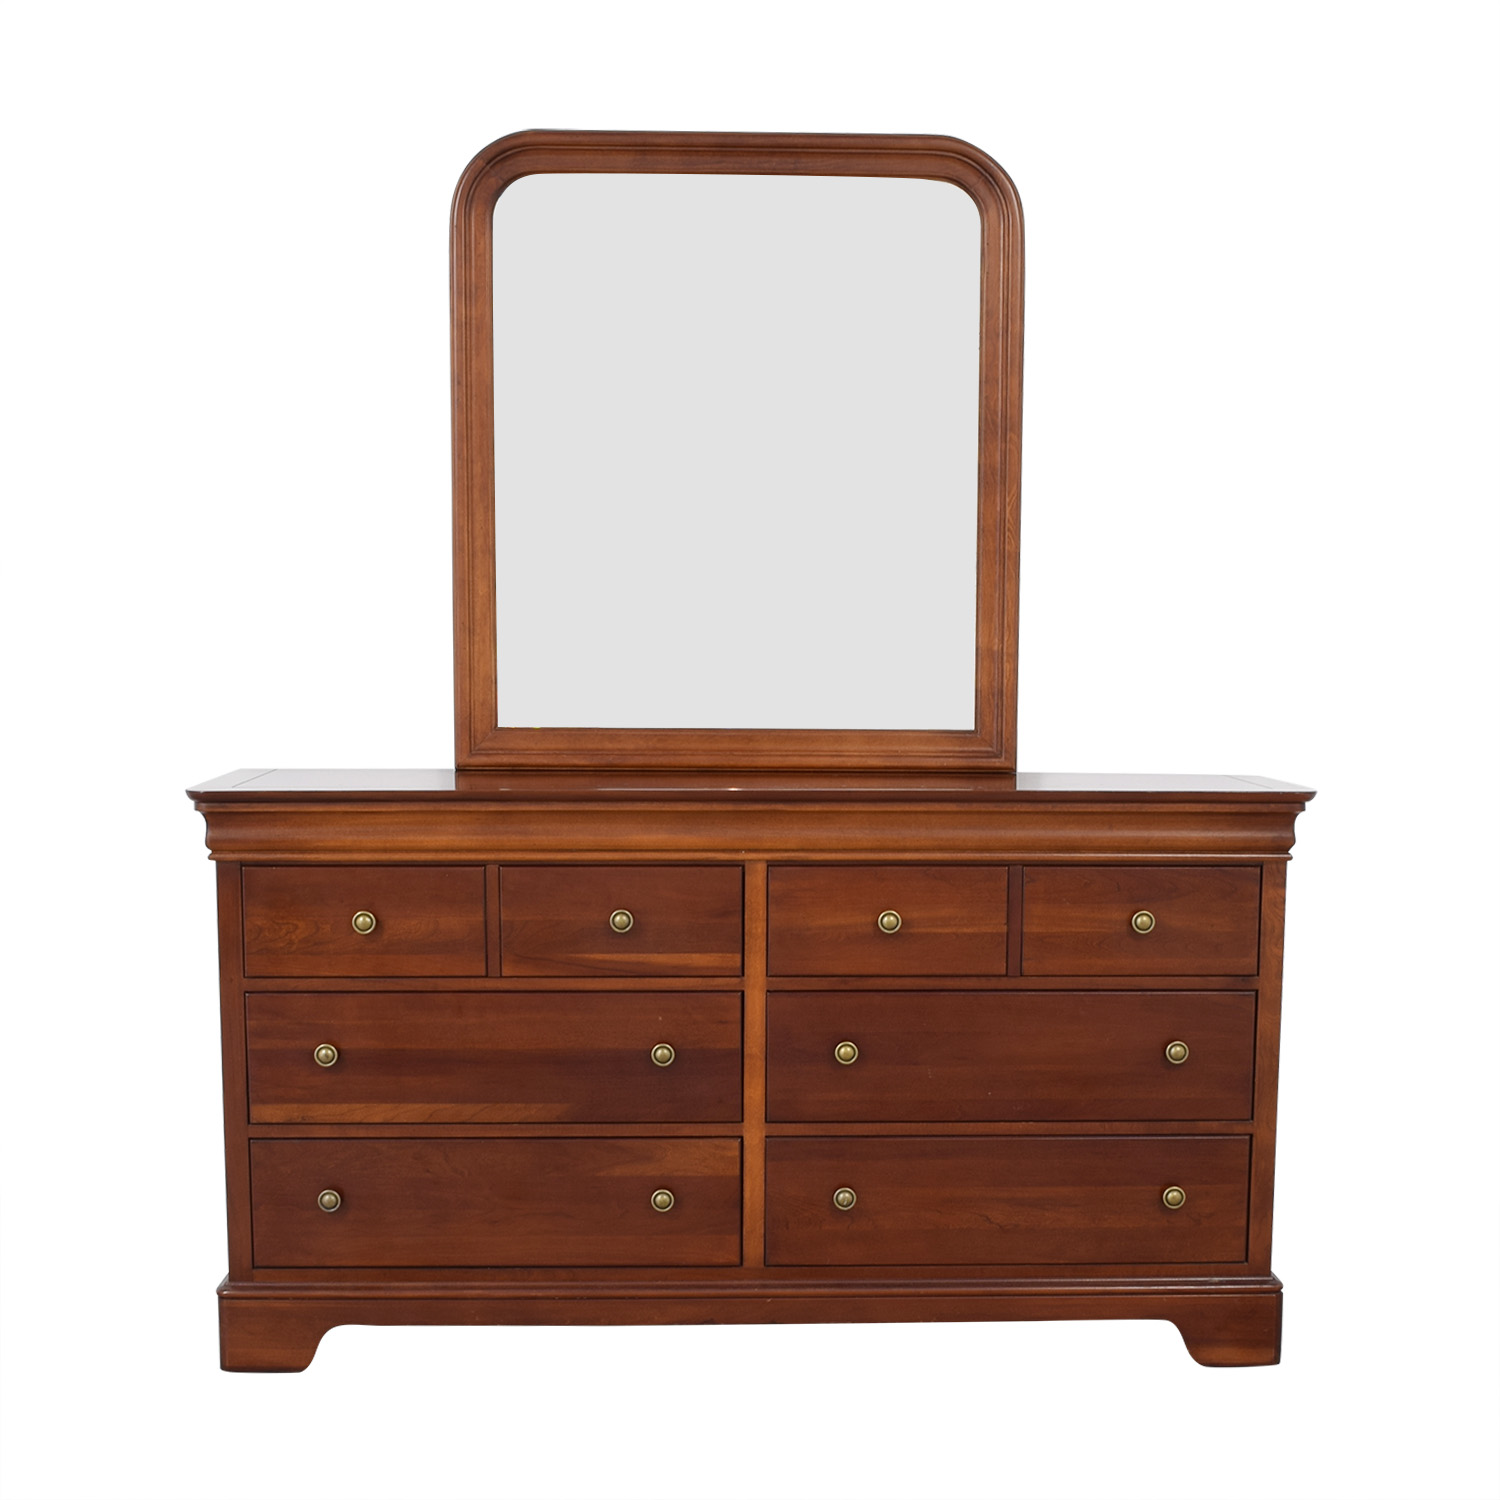 Stanley Furniture Dresser with Mirror / Storage